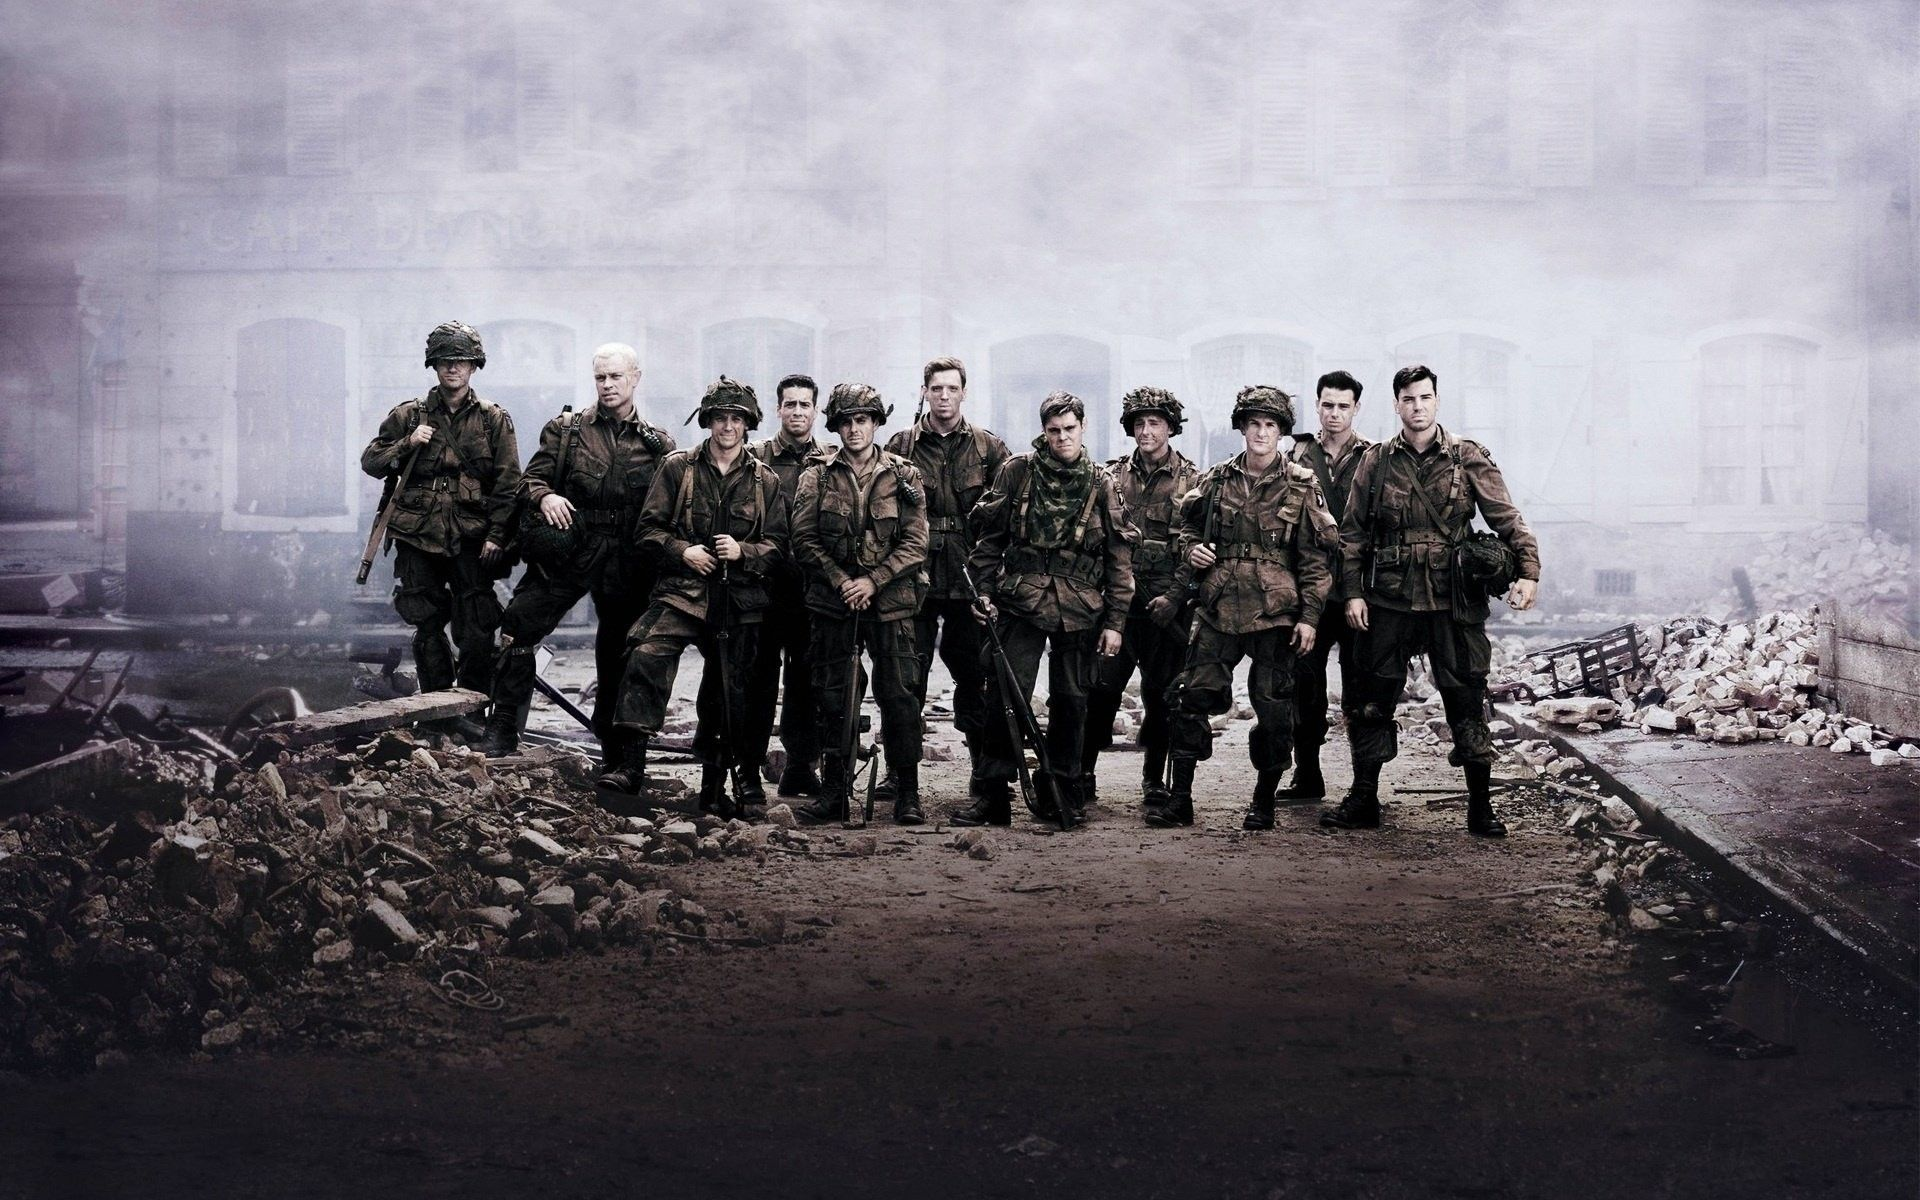 Band of Brothers Wallpapers - Top Free Band of Brothers Backgrounds - WallpaperAccess